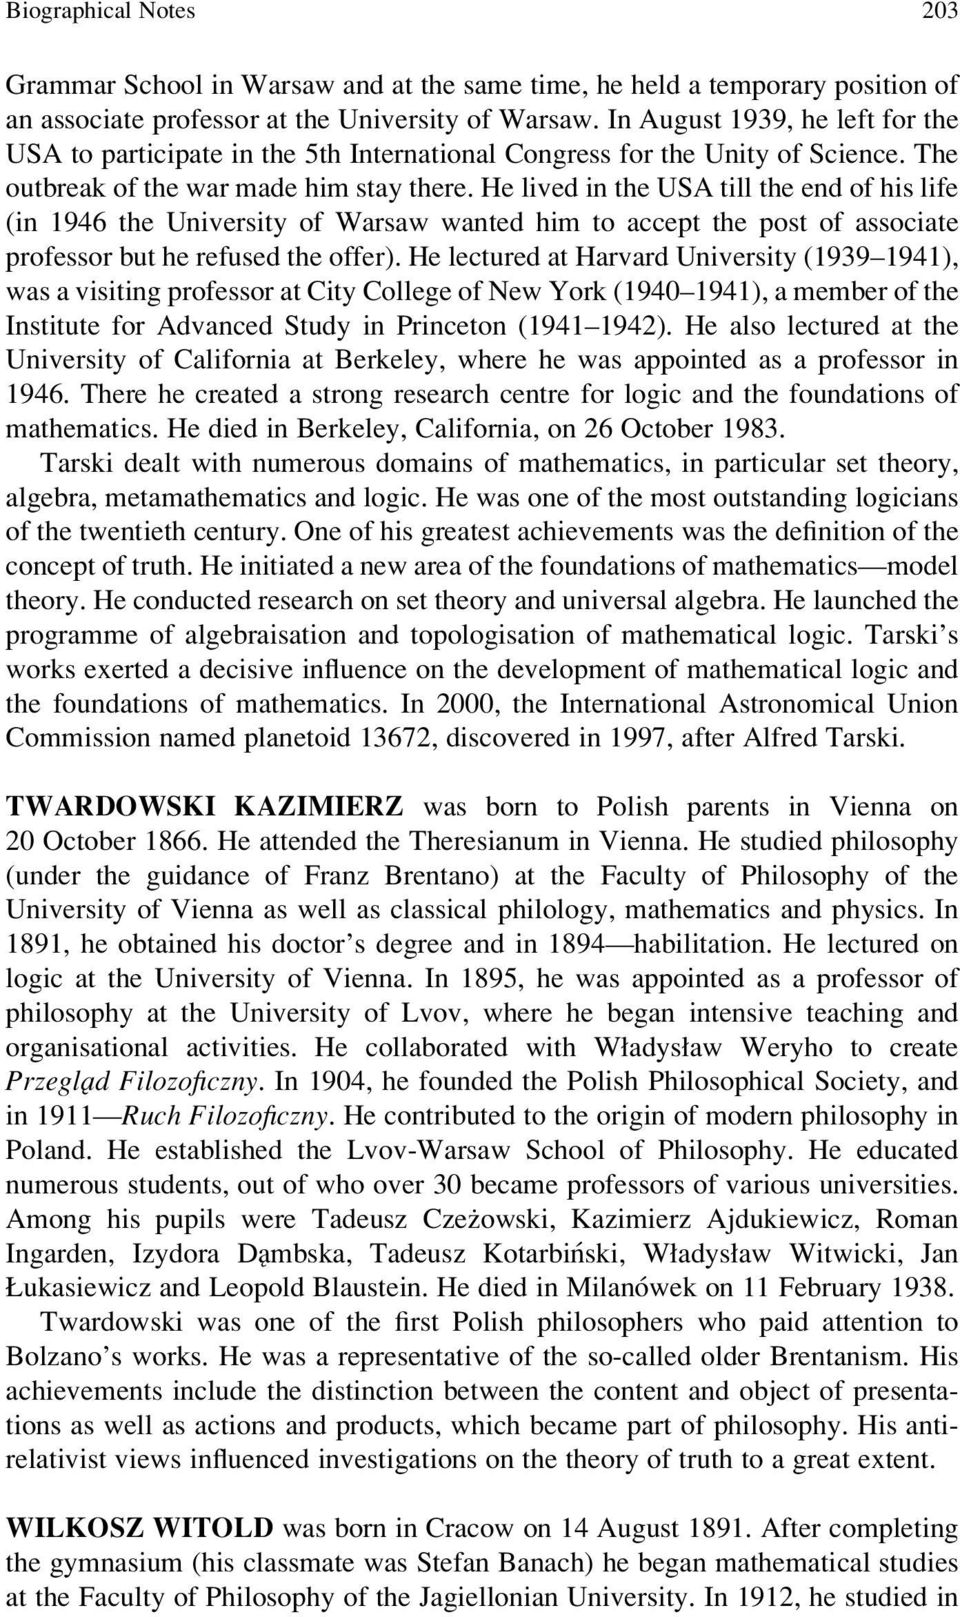 He lived in the USA till the end of his life (in 1946 the University of Warsaw wanted him to accept the post of associate professor but he refused the offer).